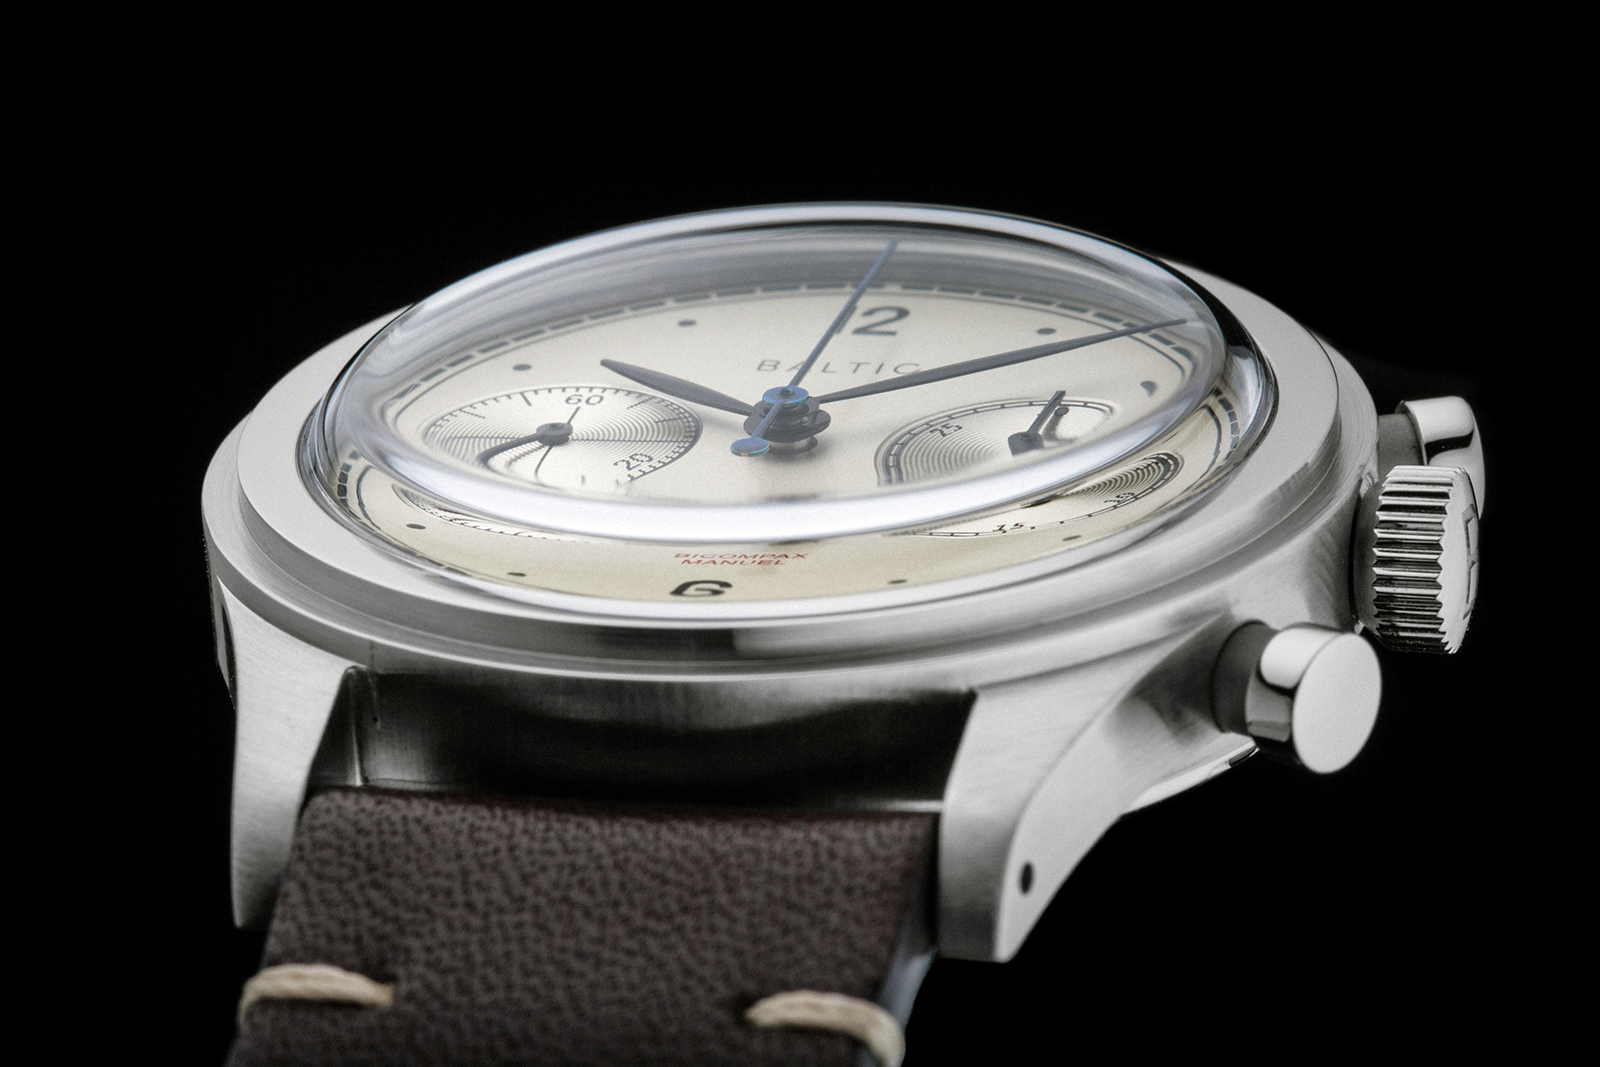 Baltic-Watches-BICOMPAX 001-Pierre-Le-Targat-Photographe